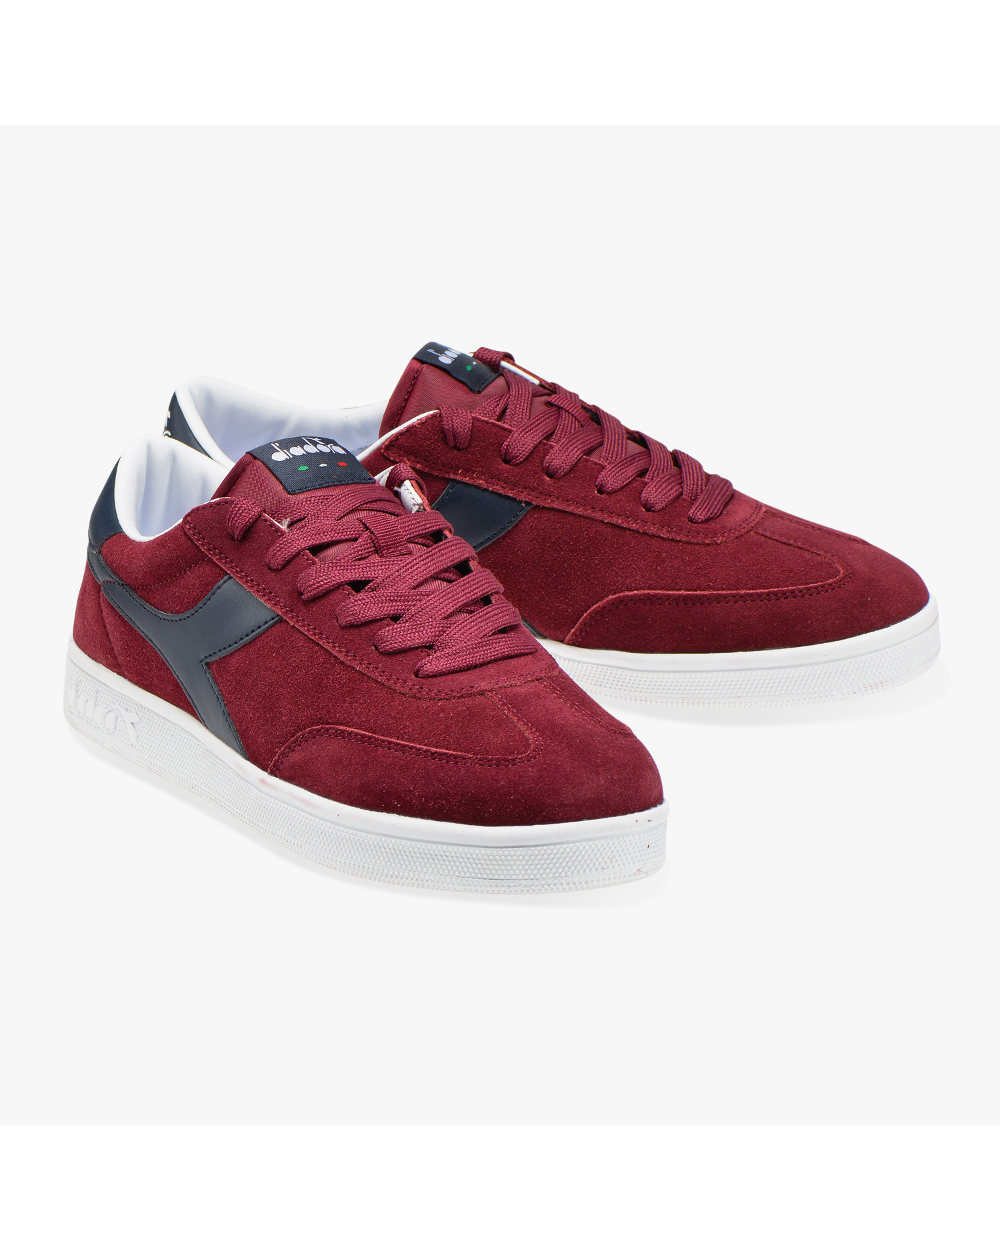 Diadora shoes Sneakers Sportive Field red blue lifestyle sportswear